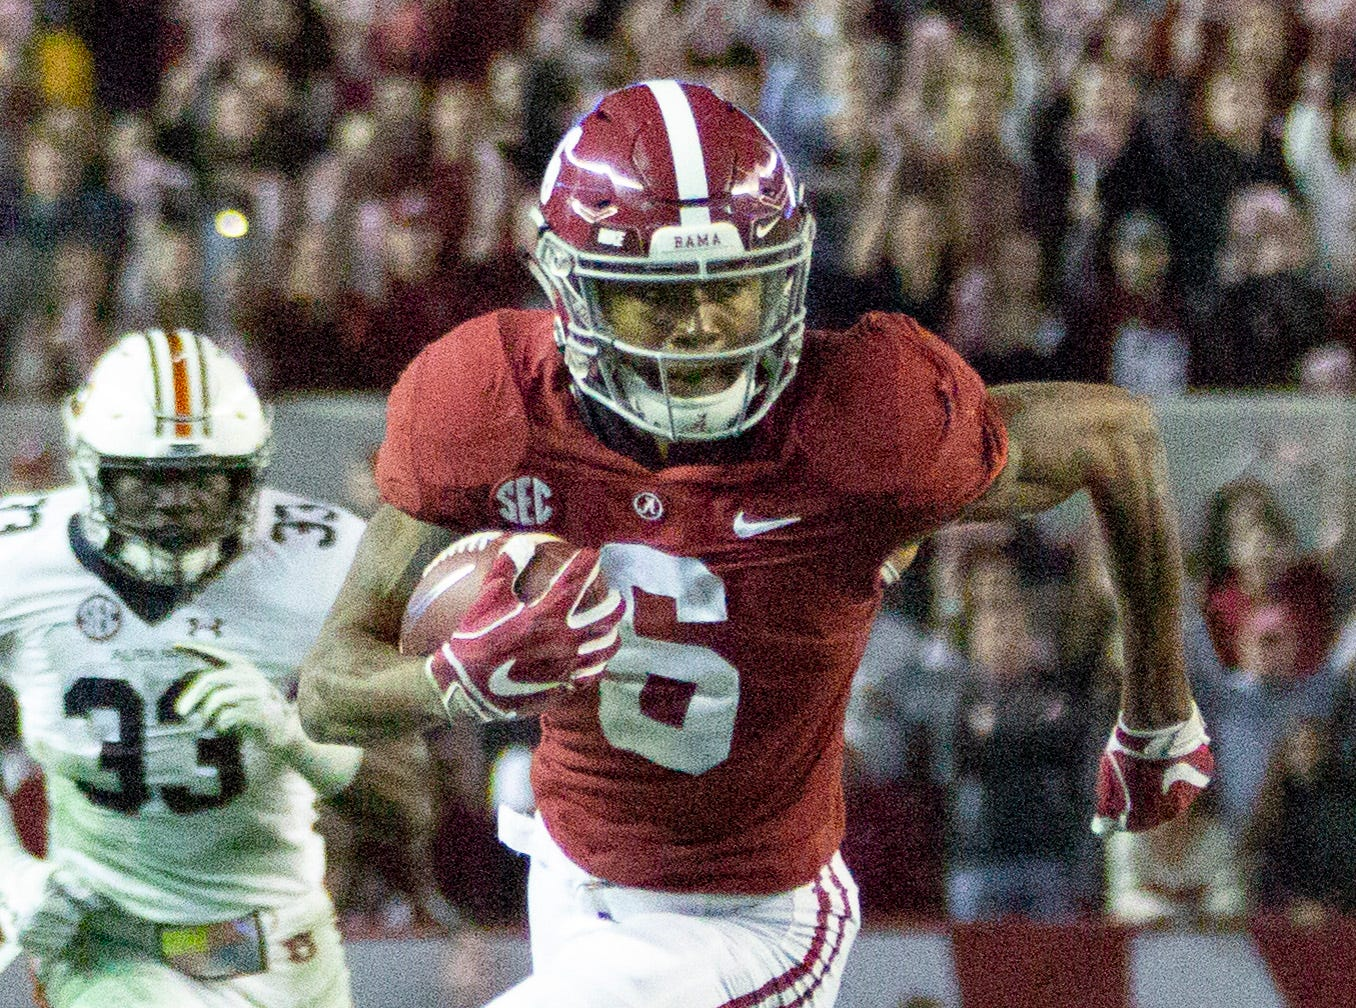 Alabama's DeVonta Smith hustles toward the end zone for a touchdown in the third quarter.